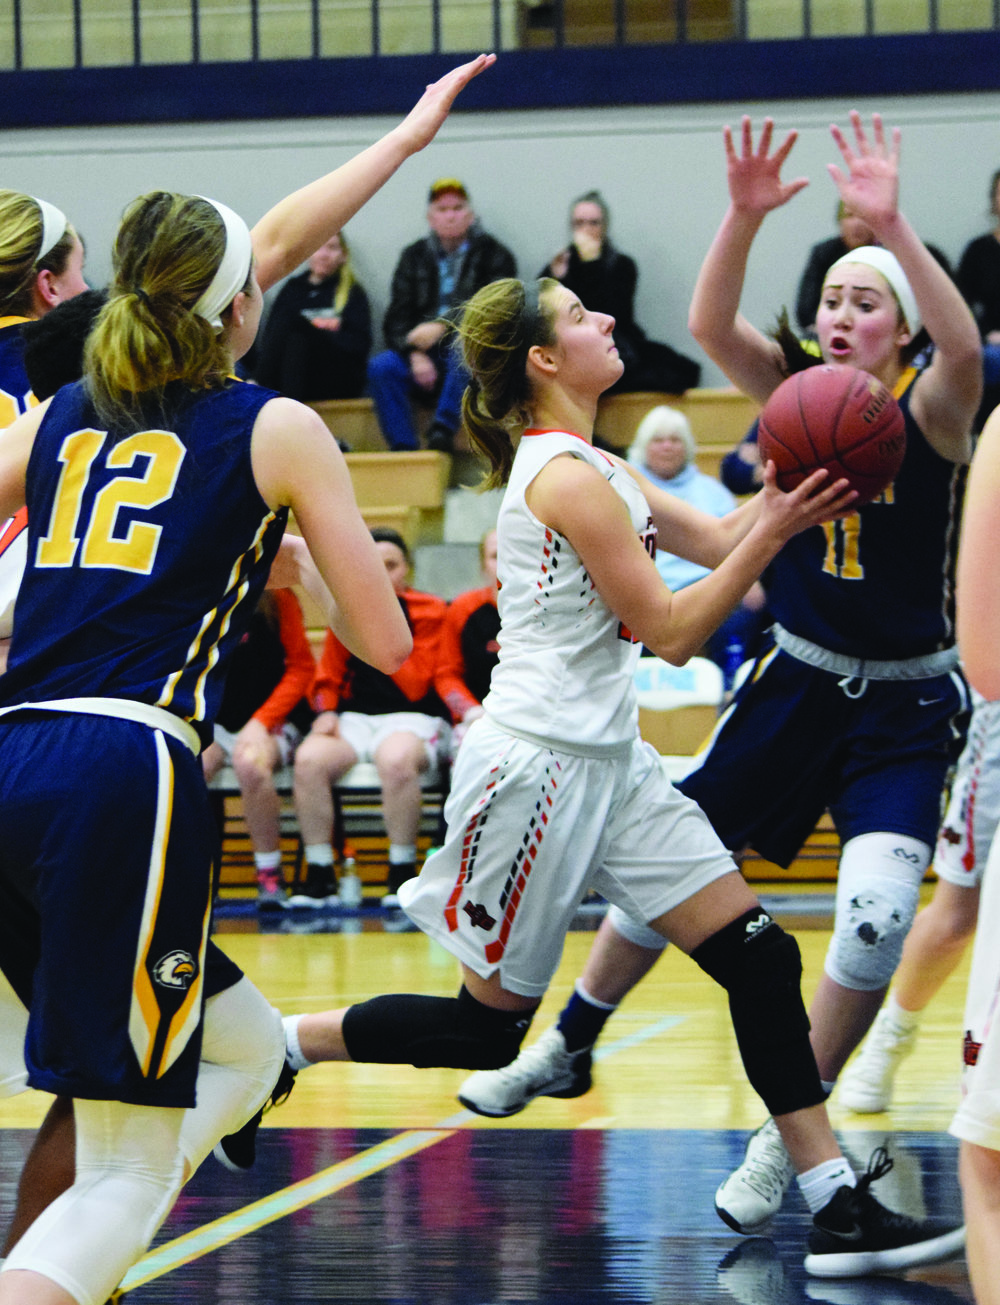 BRYCE MERENESS/Citizen photo Hannah Valentine, center, drives the lane for the winning layup in Platte County's 45-44 win against Liberty North in the first round of the Oak Park Invitational on Monday, Jan. 15.